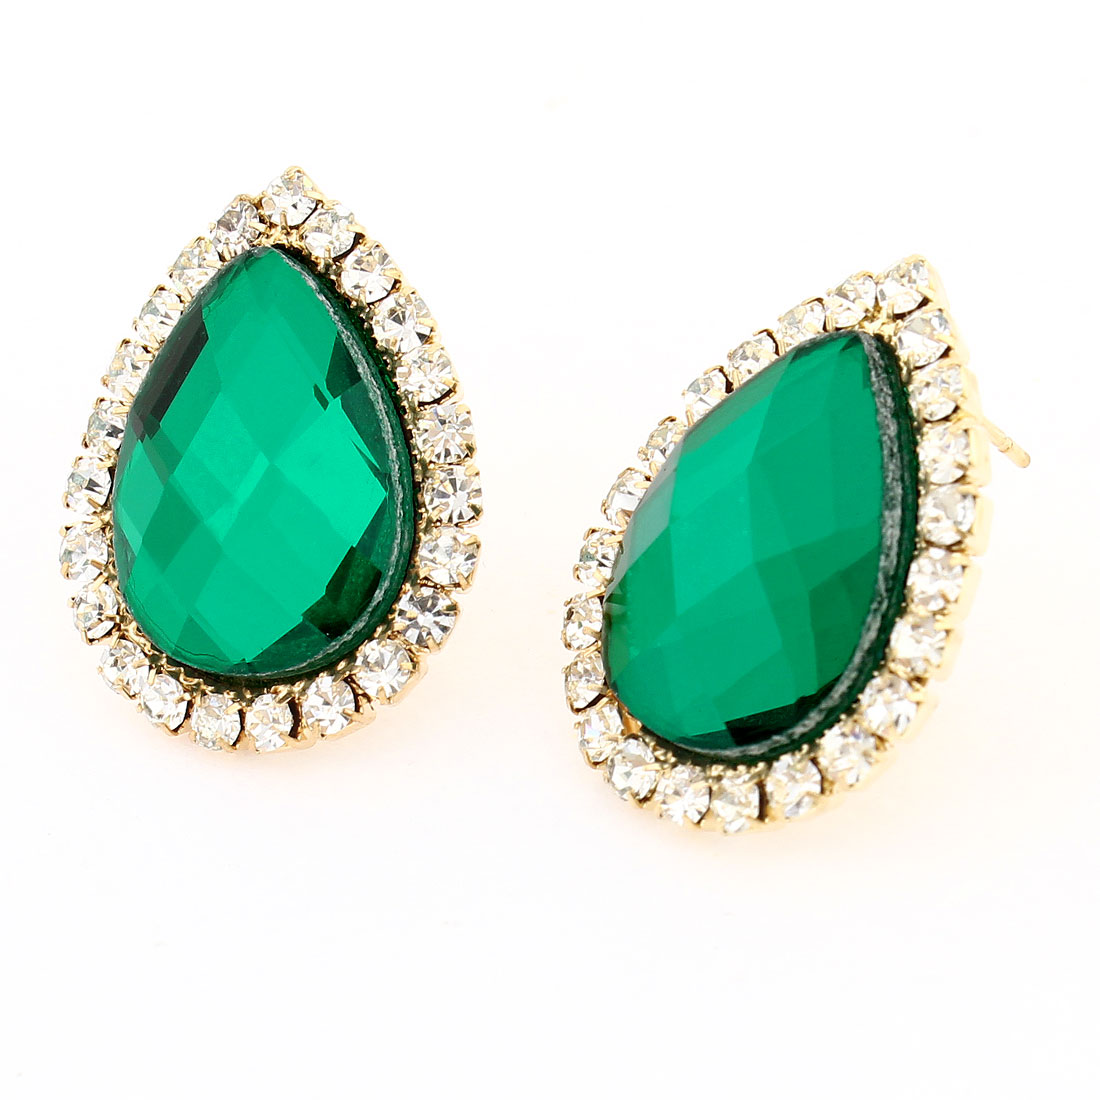 Green Faux Rhinestone Decor Waterdrop Shaped French Clip Stud Earrings x 2